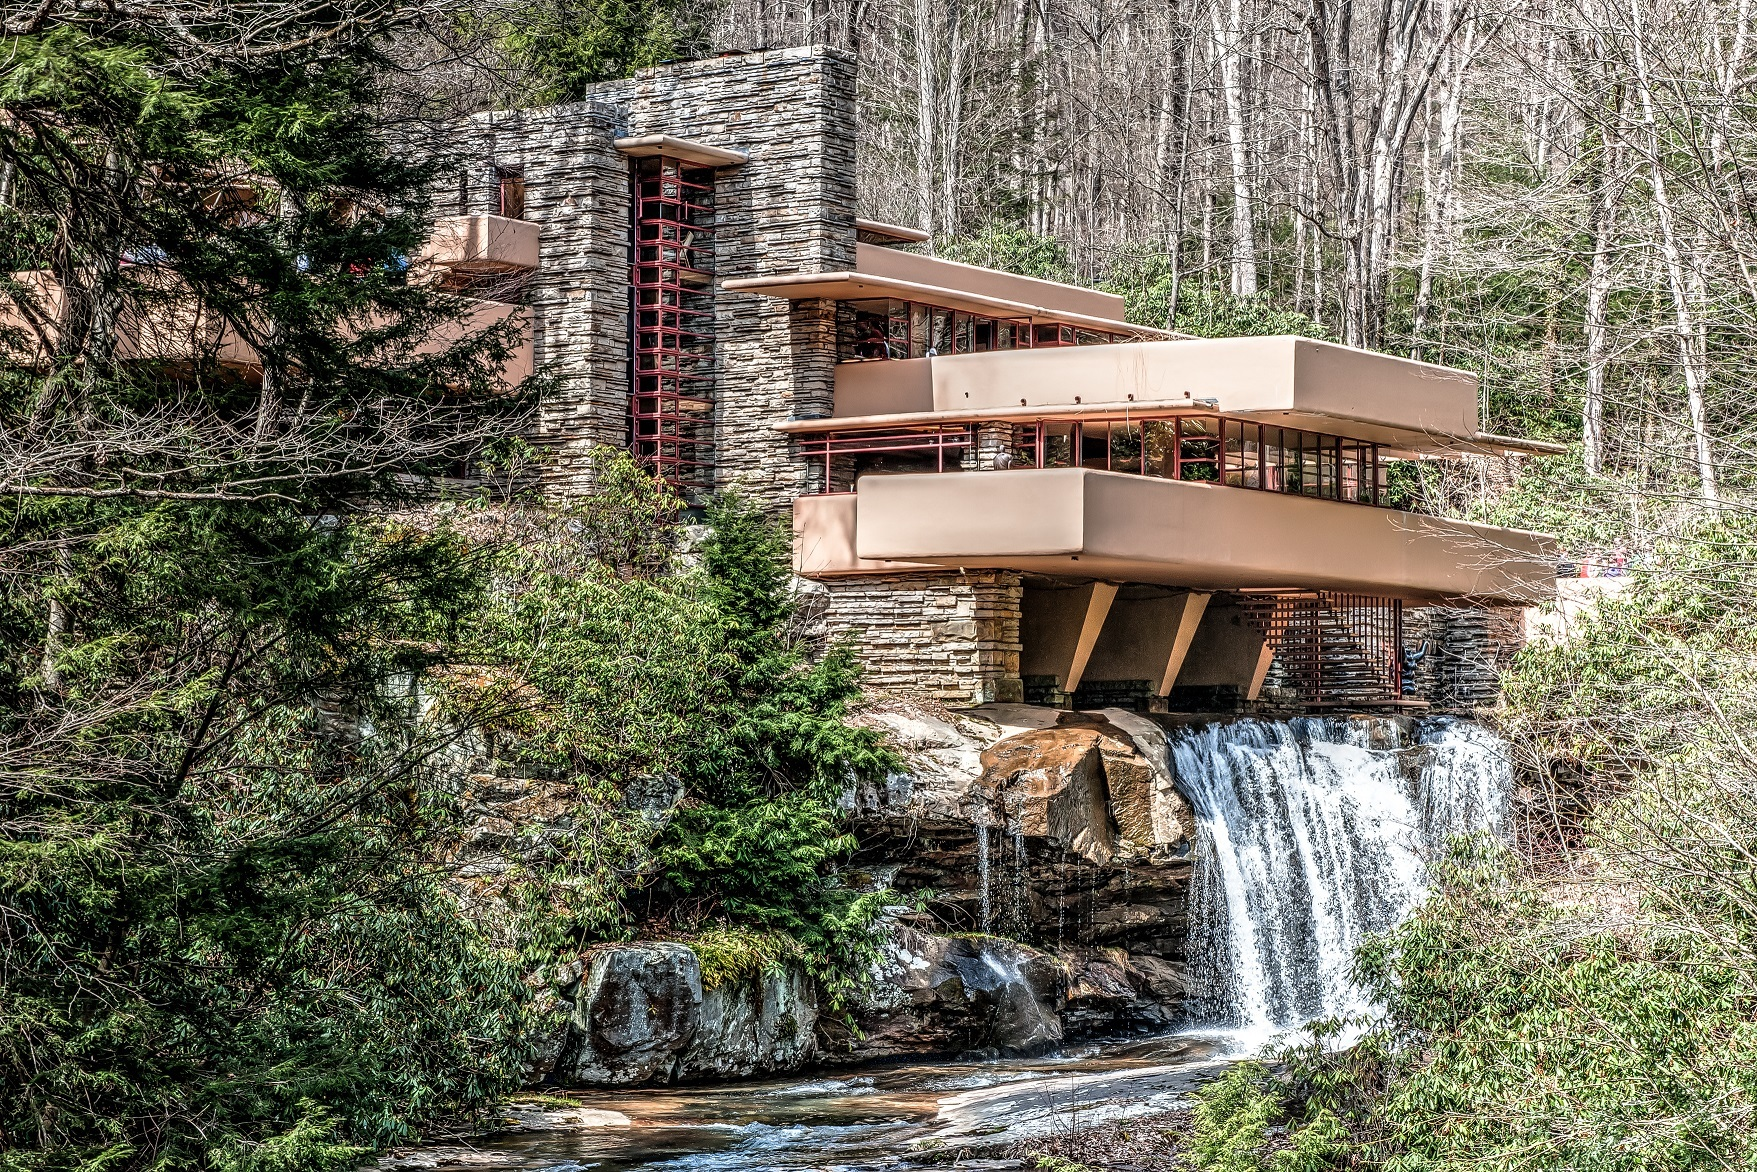 Frank Lloyd Wright's Fallingwater house HDR